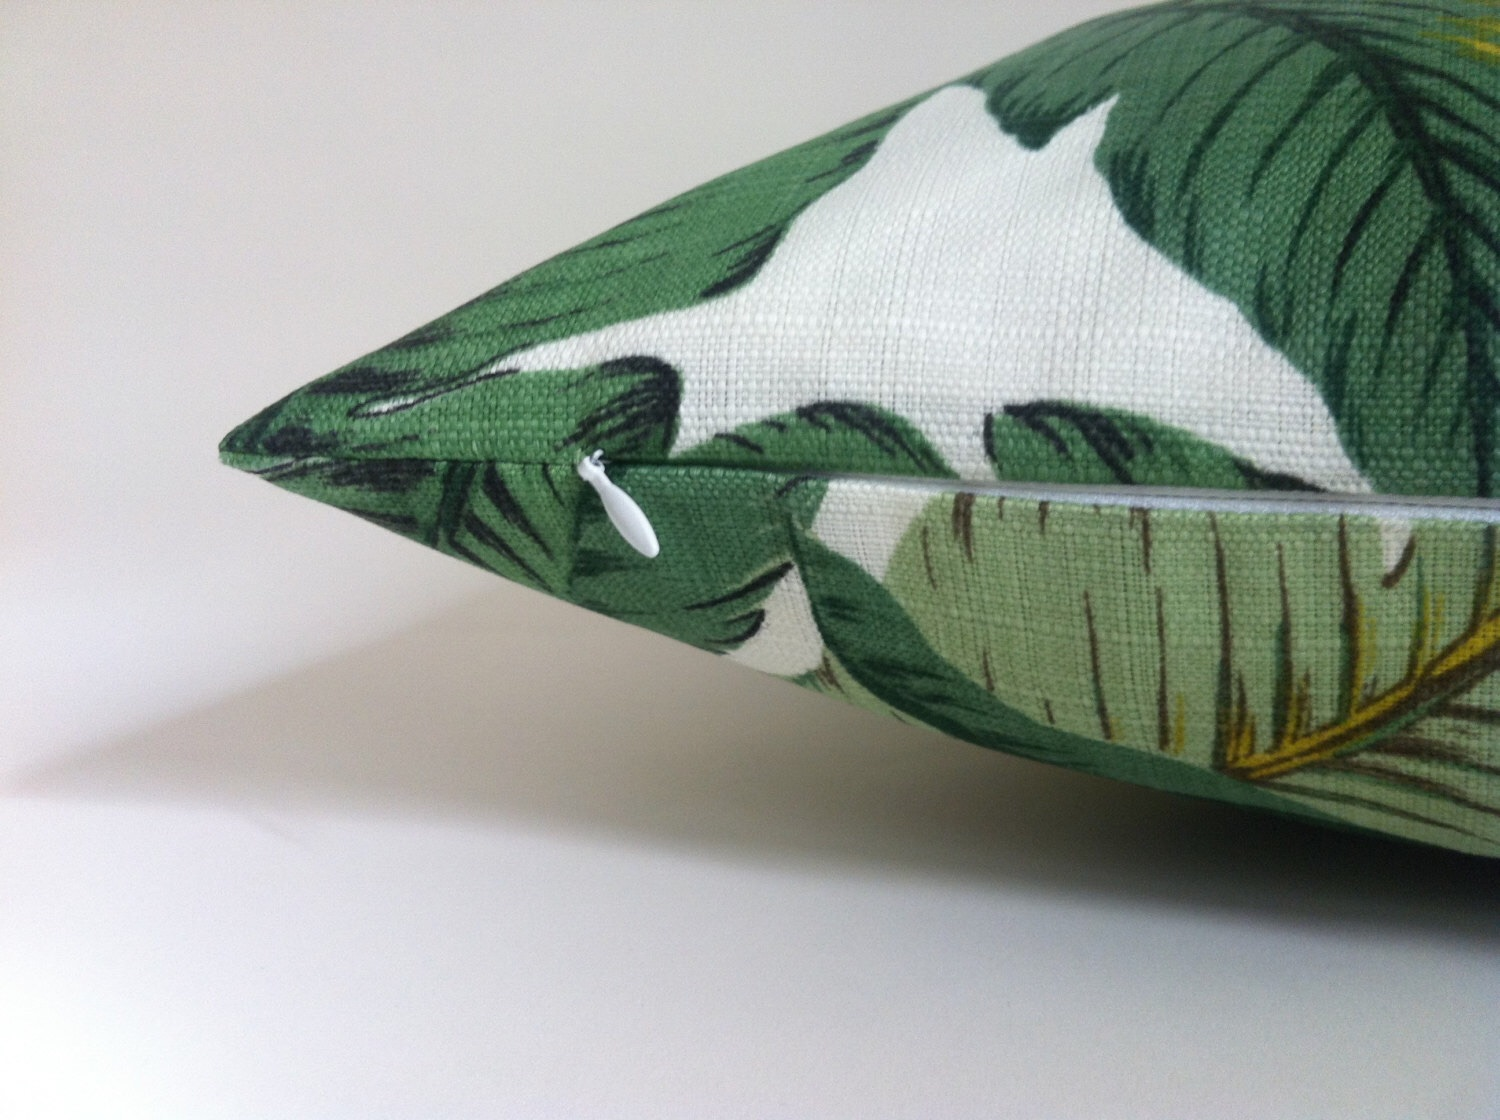 HGOD DESIGNS Banana Leaf Decorative Throw Pillow Cover Case,Watercolor Banana Leaves Cotton Linen Outdoor Pillow cases Square St. Sold by FastMedia. $ Panda Superstore Cute Cartoon Cotton Carpet Non-slip Mat Banana Leaf Door Mat (40 By 60cm) YELLOW. Sold by Blancho Bedding.